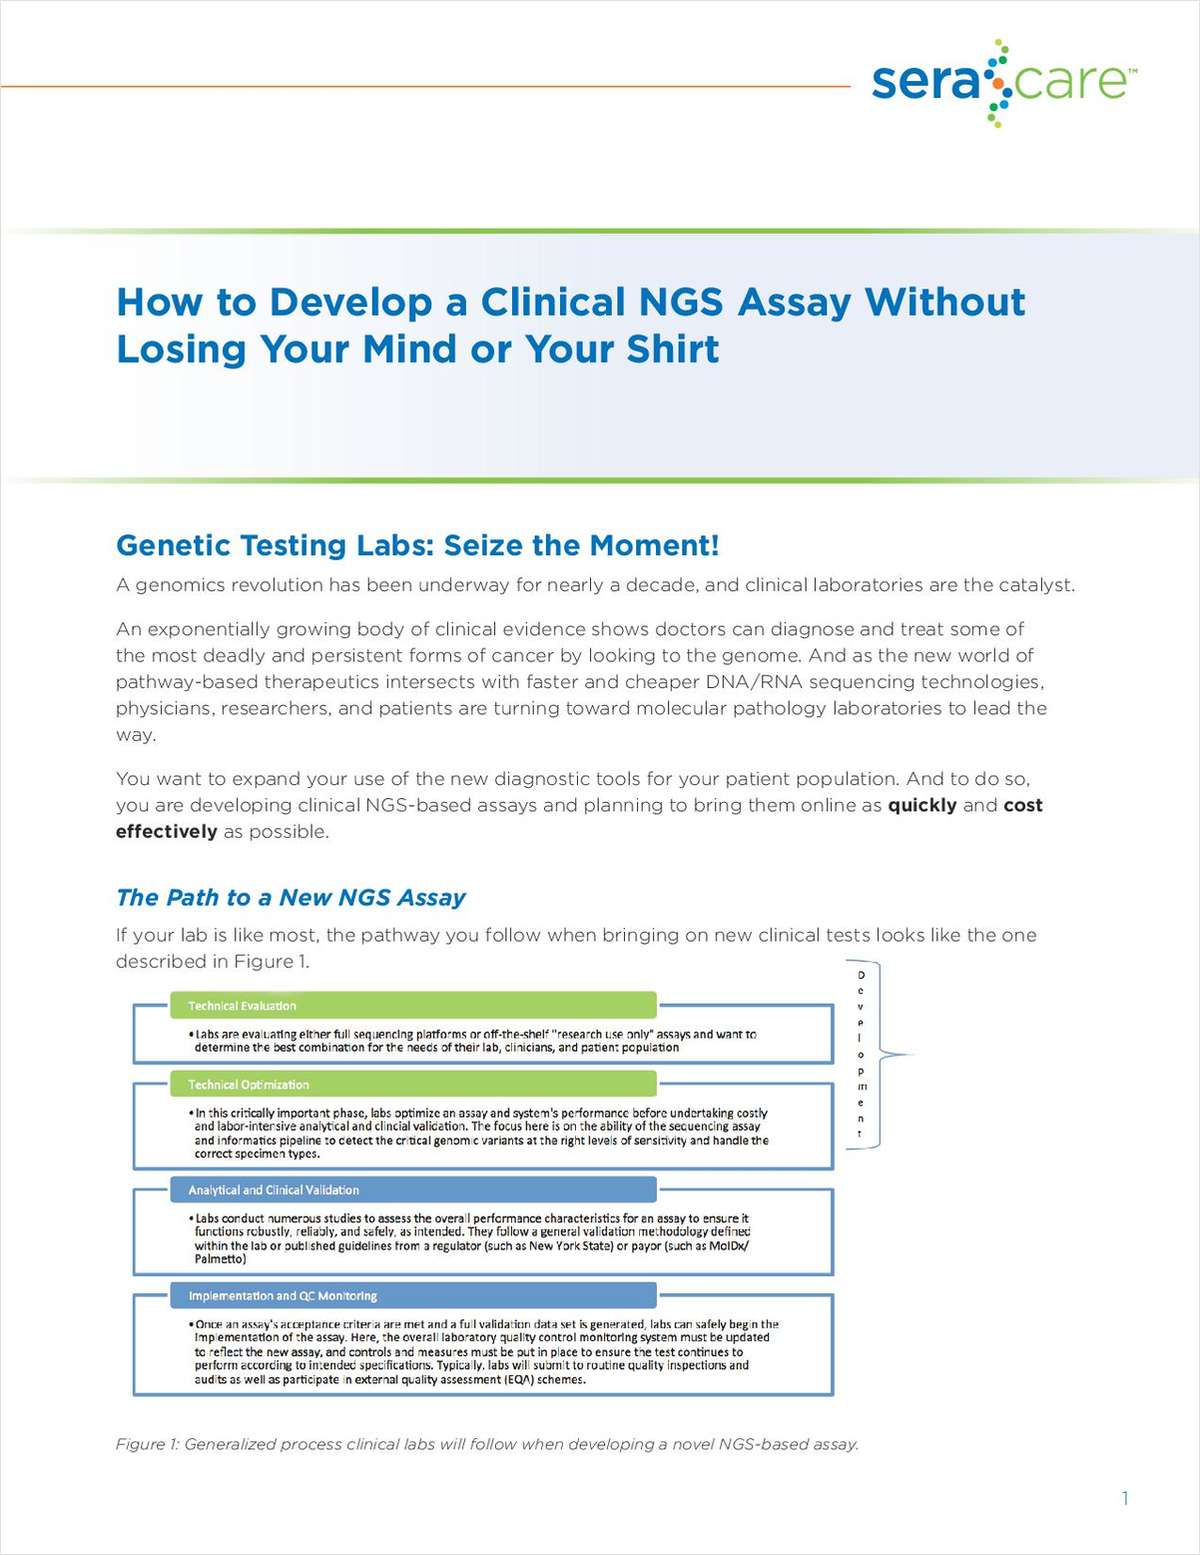 How to Develop a Clinical NGS Assay Without Losing Your Mind or Your Shirt